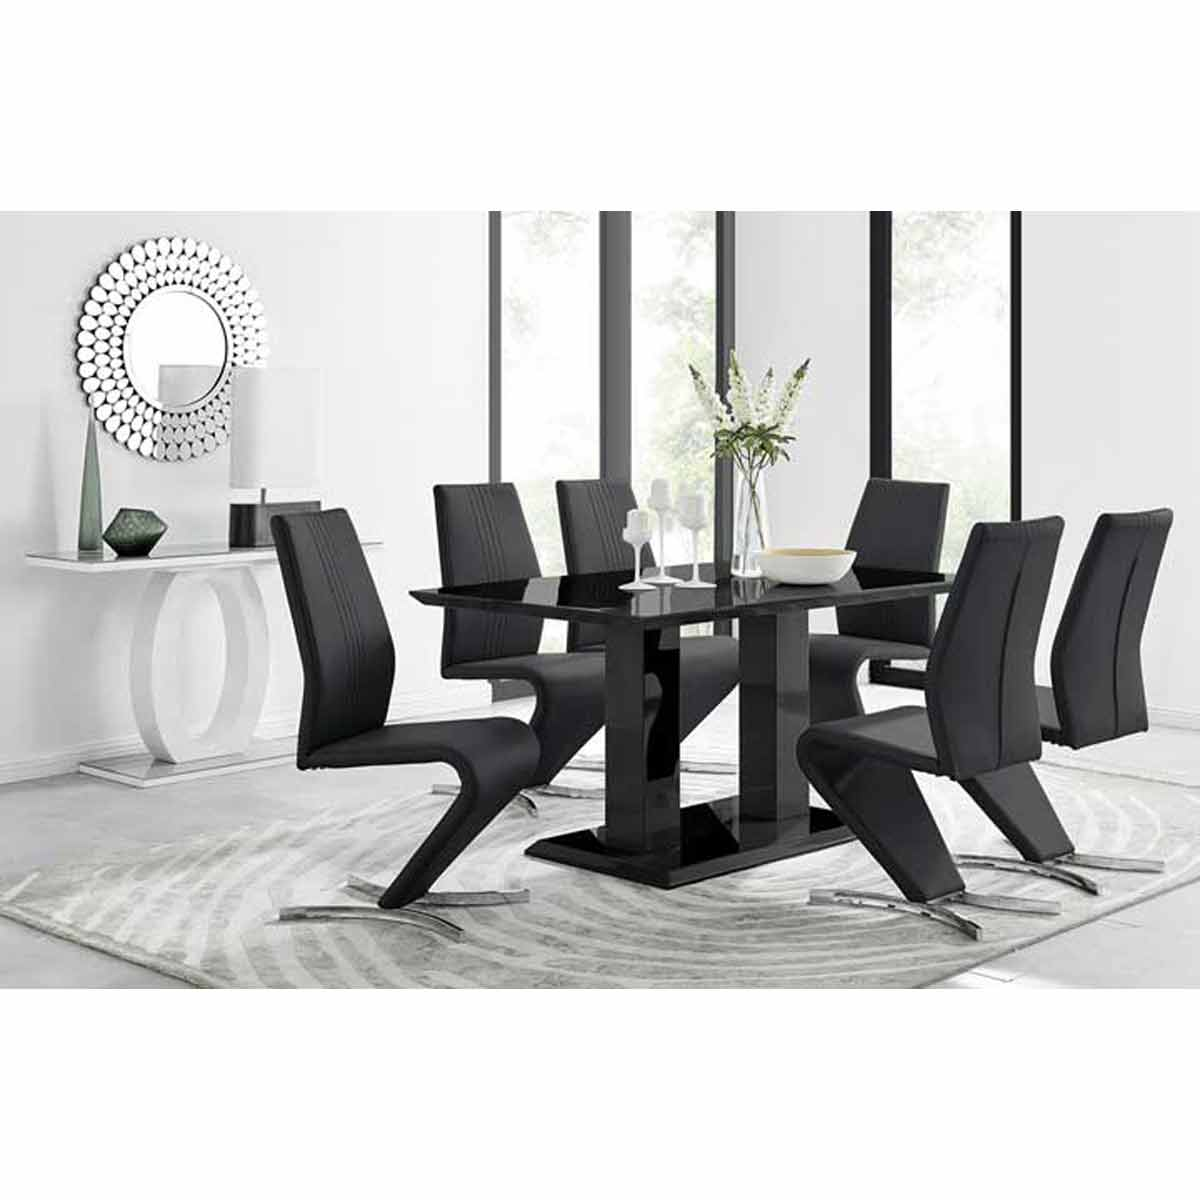 Furniture Box Imperia Black High Gloss Dining Table And 6 Black Luxury Willow Dining Chairs Set